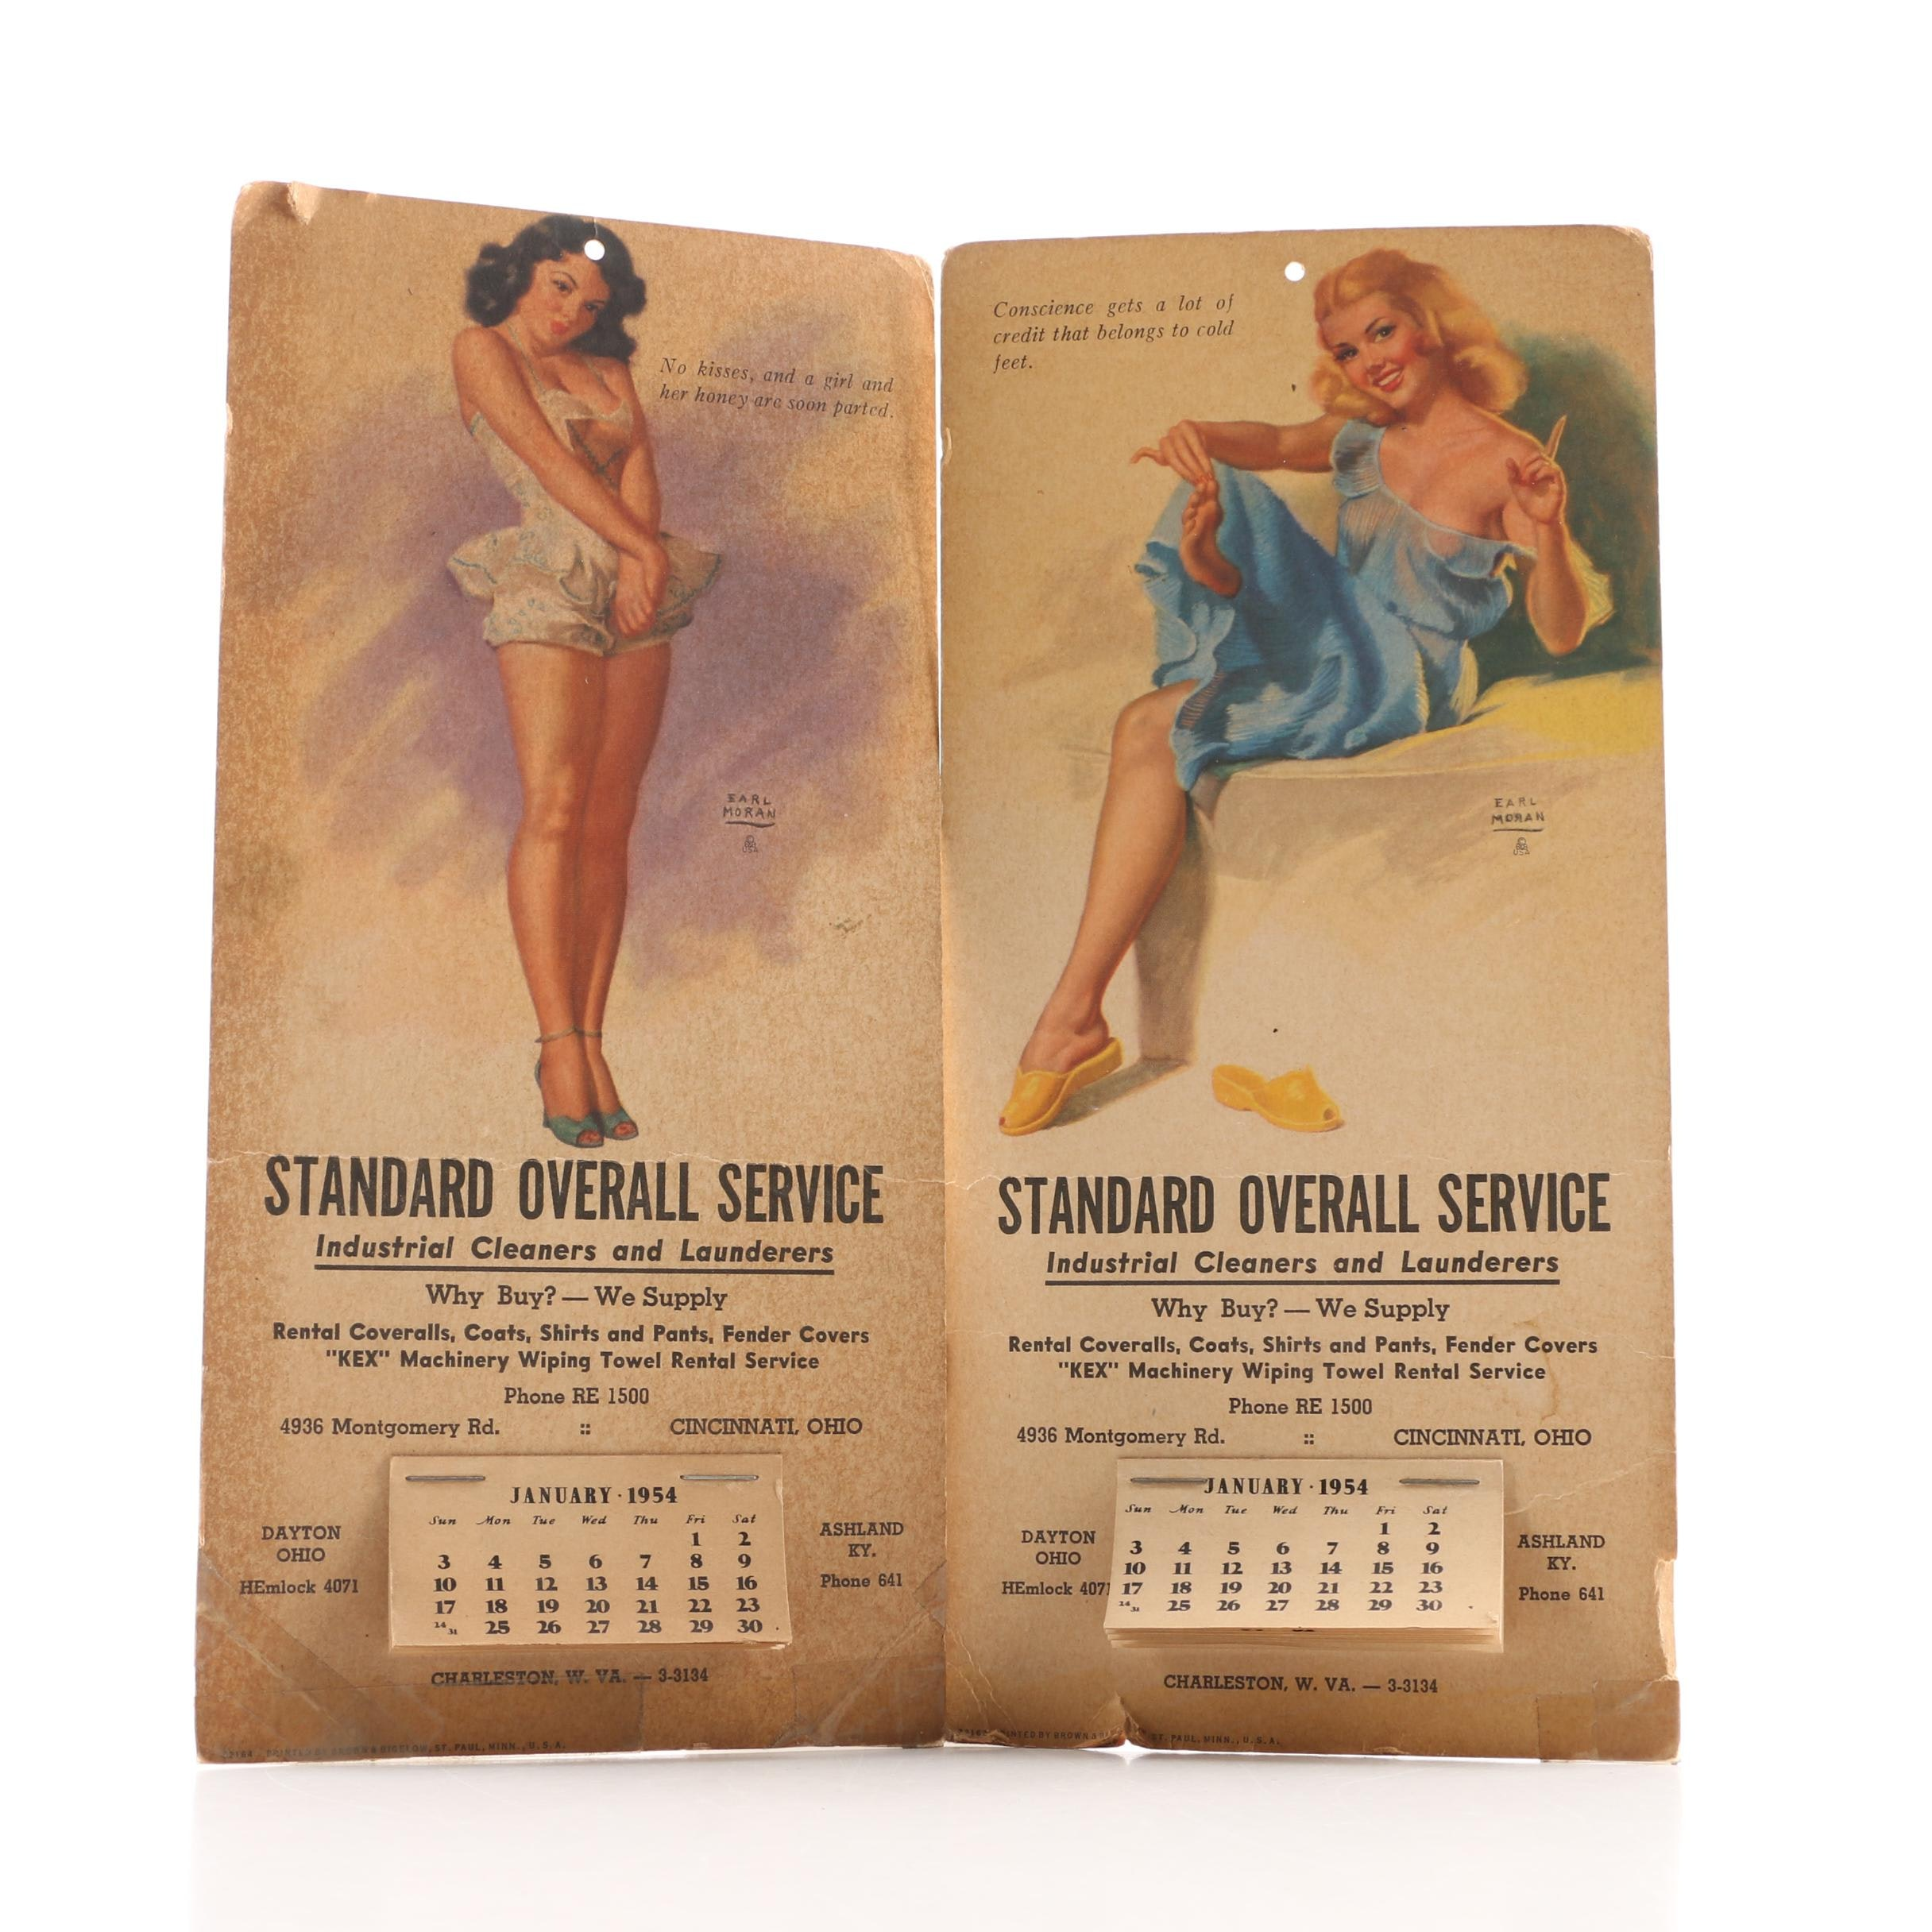 1954 Standard Overall Service after Ed Moran Drawn Advertising Calendars